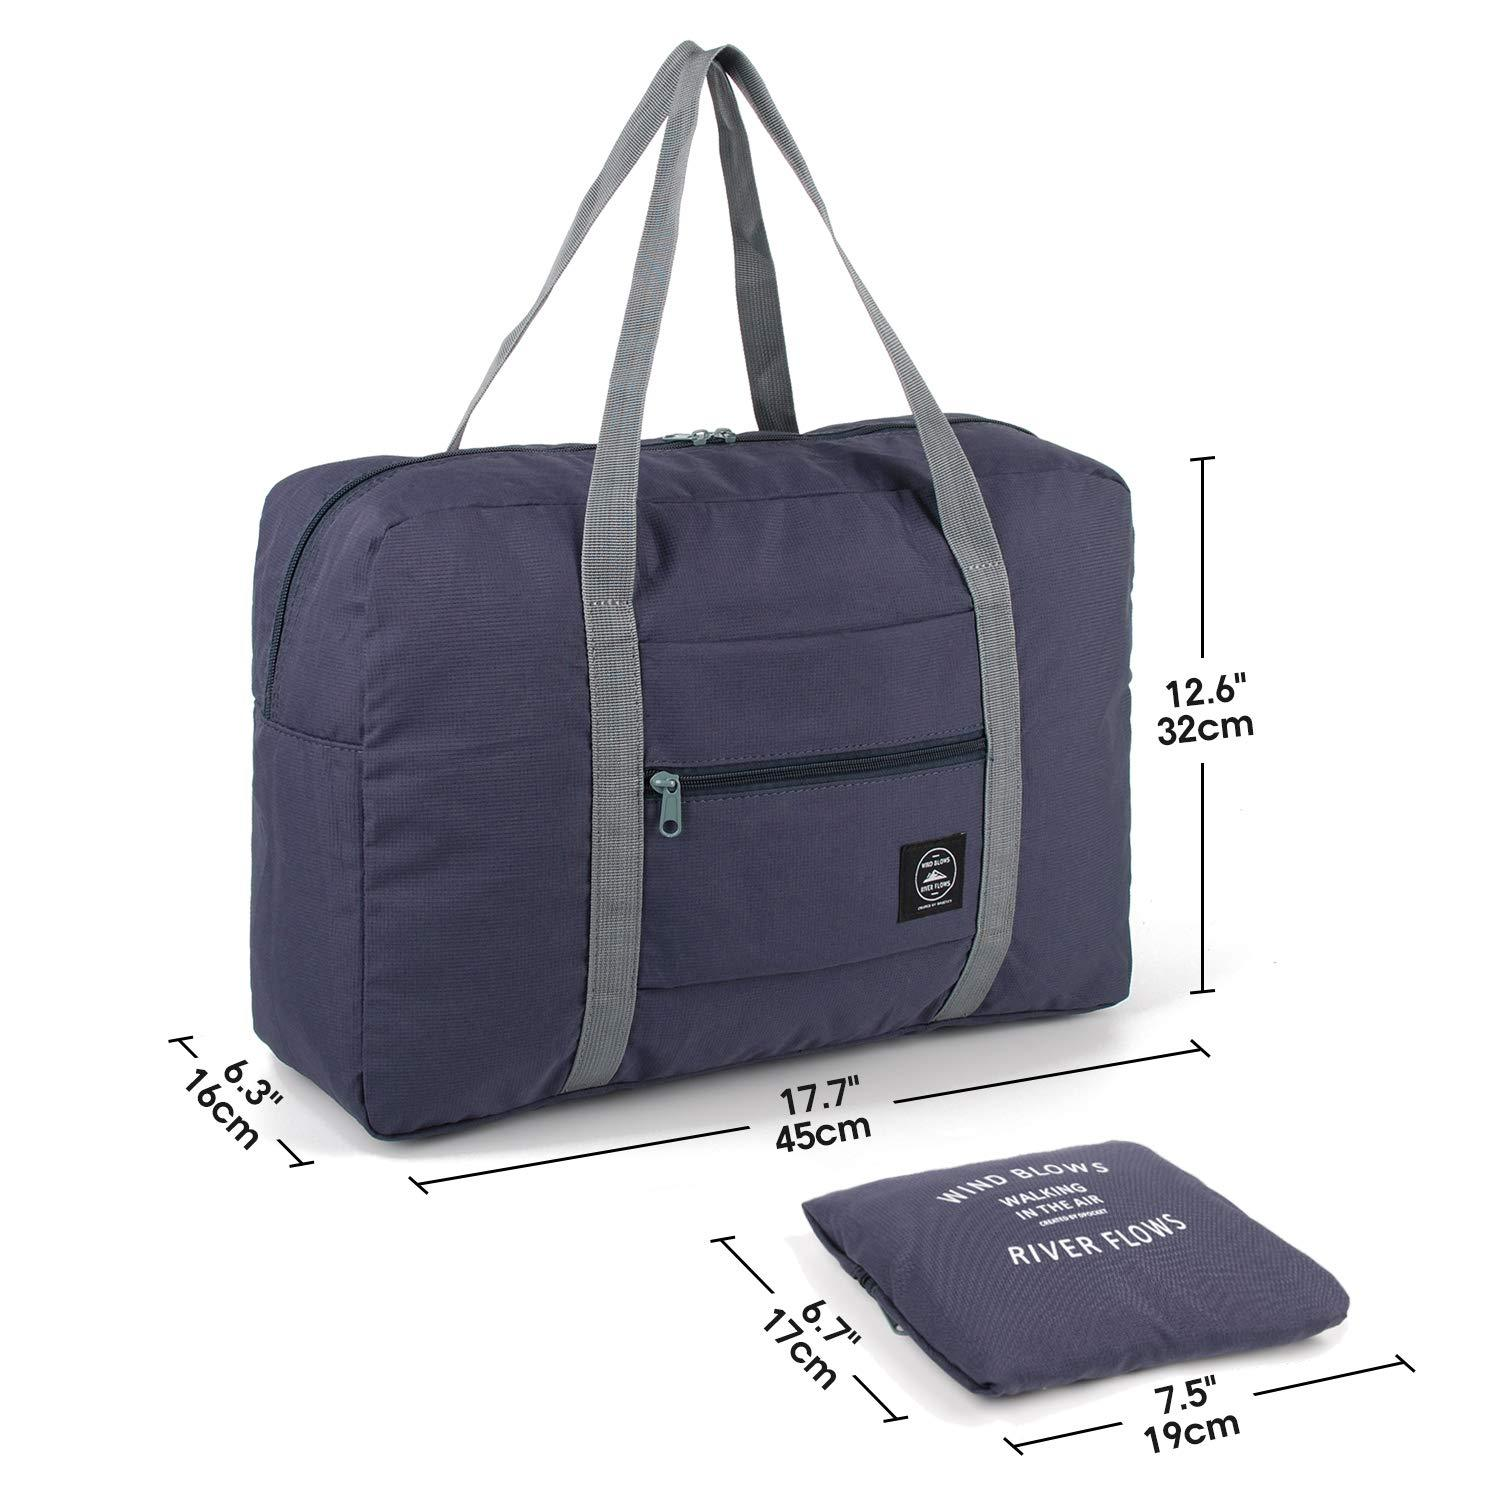 (Buy 2 Free Shipping!!!)</br>55% OFF Travel Foldable Duffel Bag